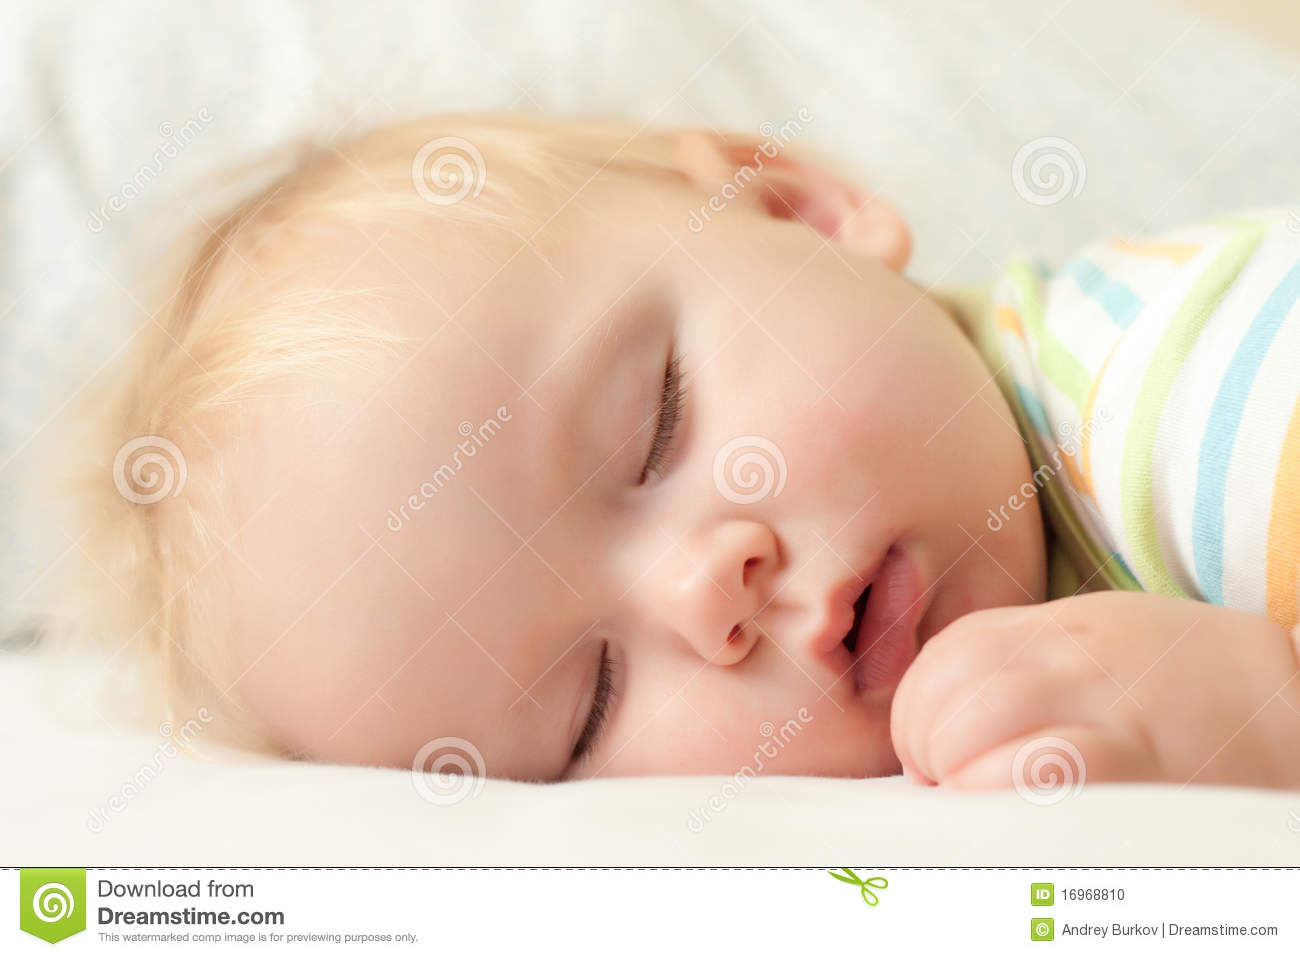 Cute Babies Sleeping Images: Cute Sleeping Baby Stock Photo